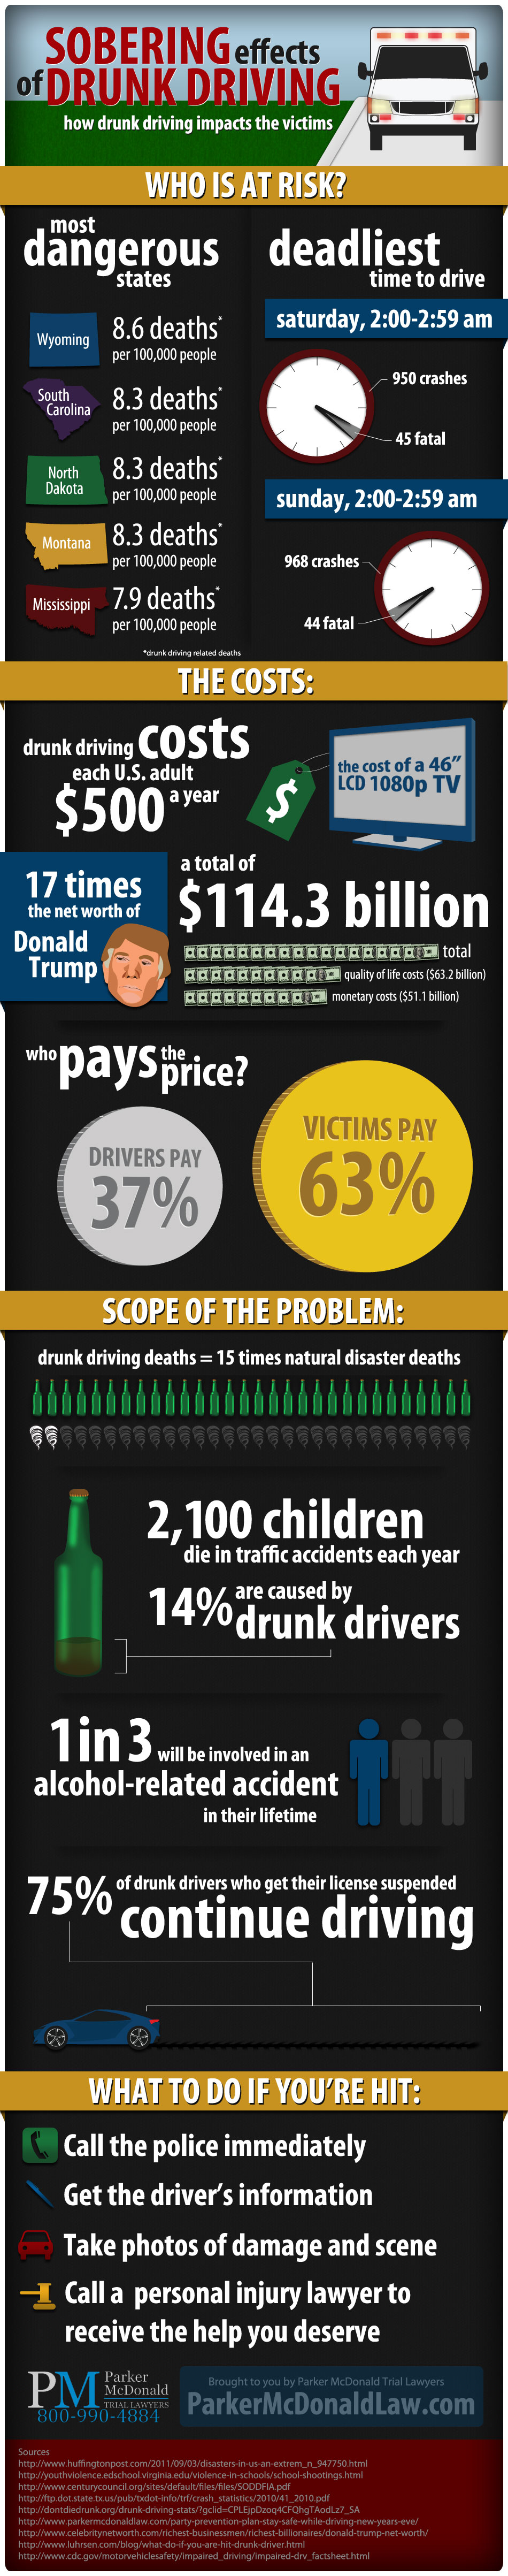 Effects of Drunk Driving Infographic